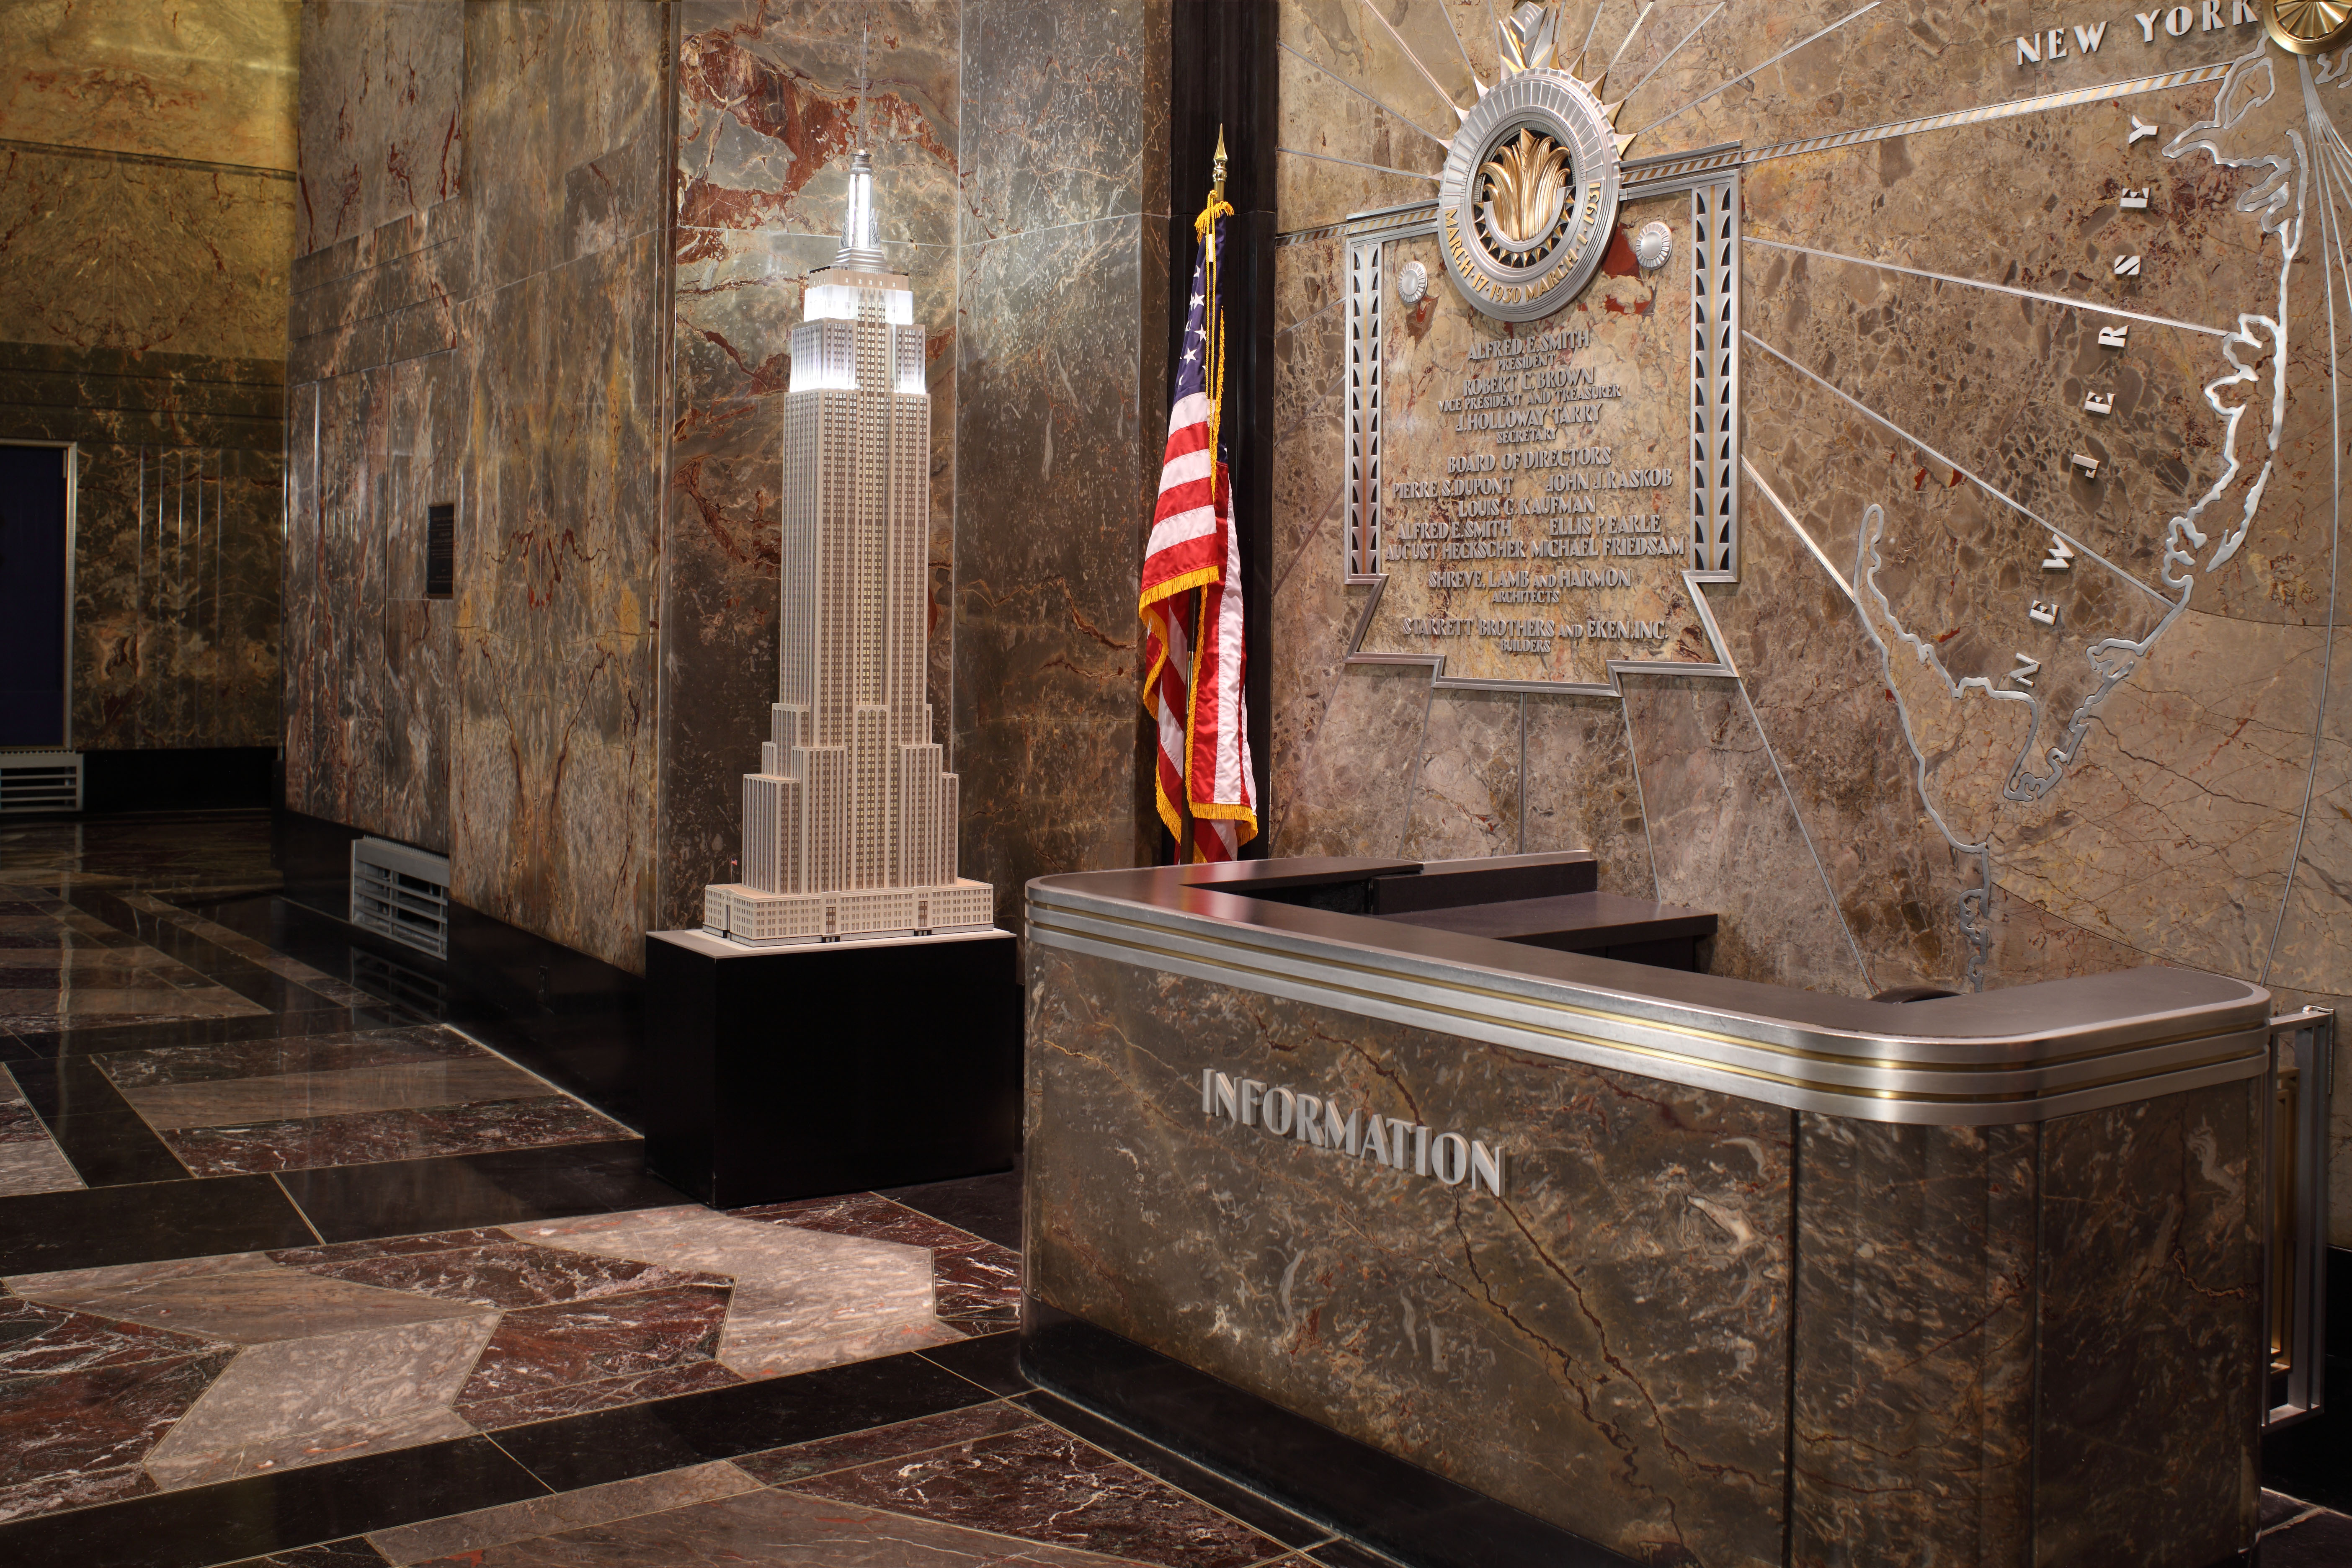 Information desk empire state building - Are there offices in the empire state building ...